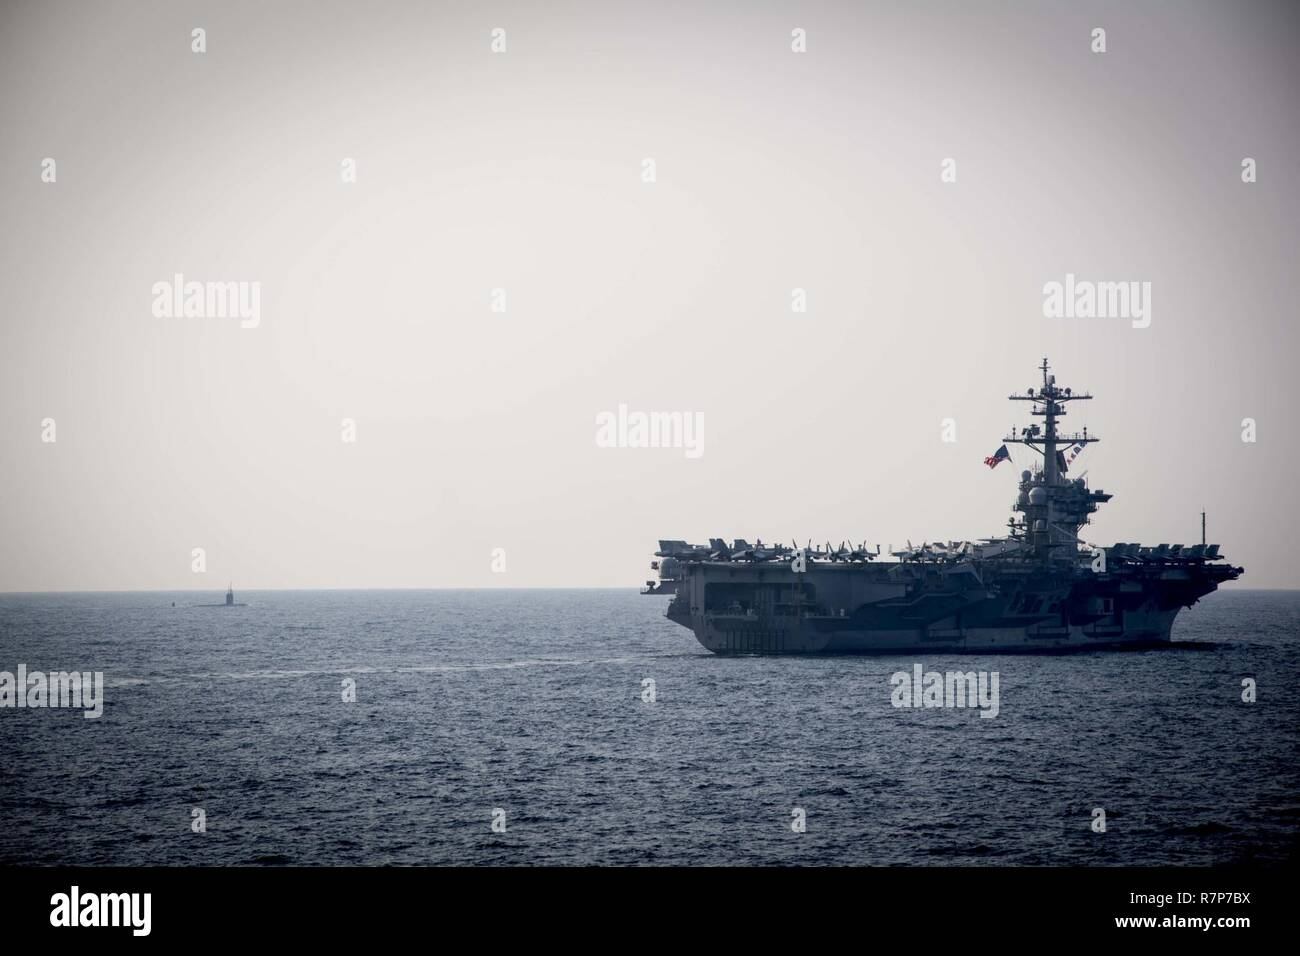 WATERS EAST OF THE KOREAN PENINSULA (March 22, 2017) The Nimitz-class aircraft carrier USS Carl Vinson (CVN 70) and blanksubmarine steam ahead of the Arleigh Burke-class guided-missile destroyer USS Stethem (DDG 63) during a surface maenuvers exercise with several other U.S. and Republic of Korea Navy ships and submarines during Foal Eagle (FE) 17. FE 17 is a series of annual training events designed to increase readiness to defend the ROK, protect the region, and maintain stability in the Korean Peninsula. - Stock Image